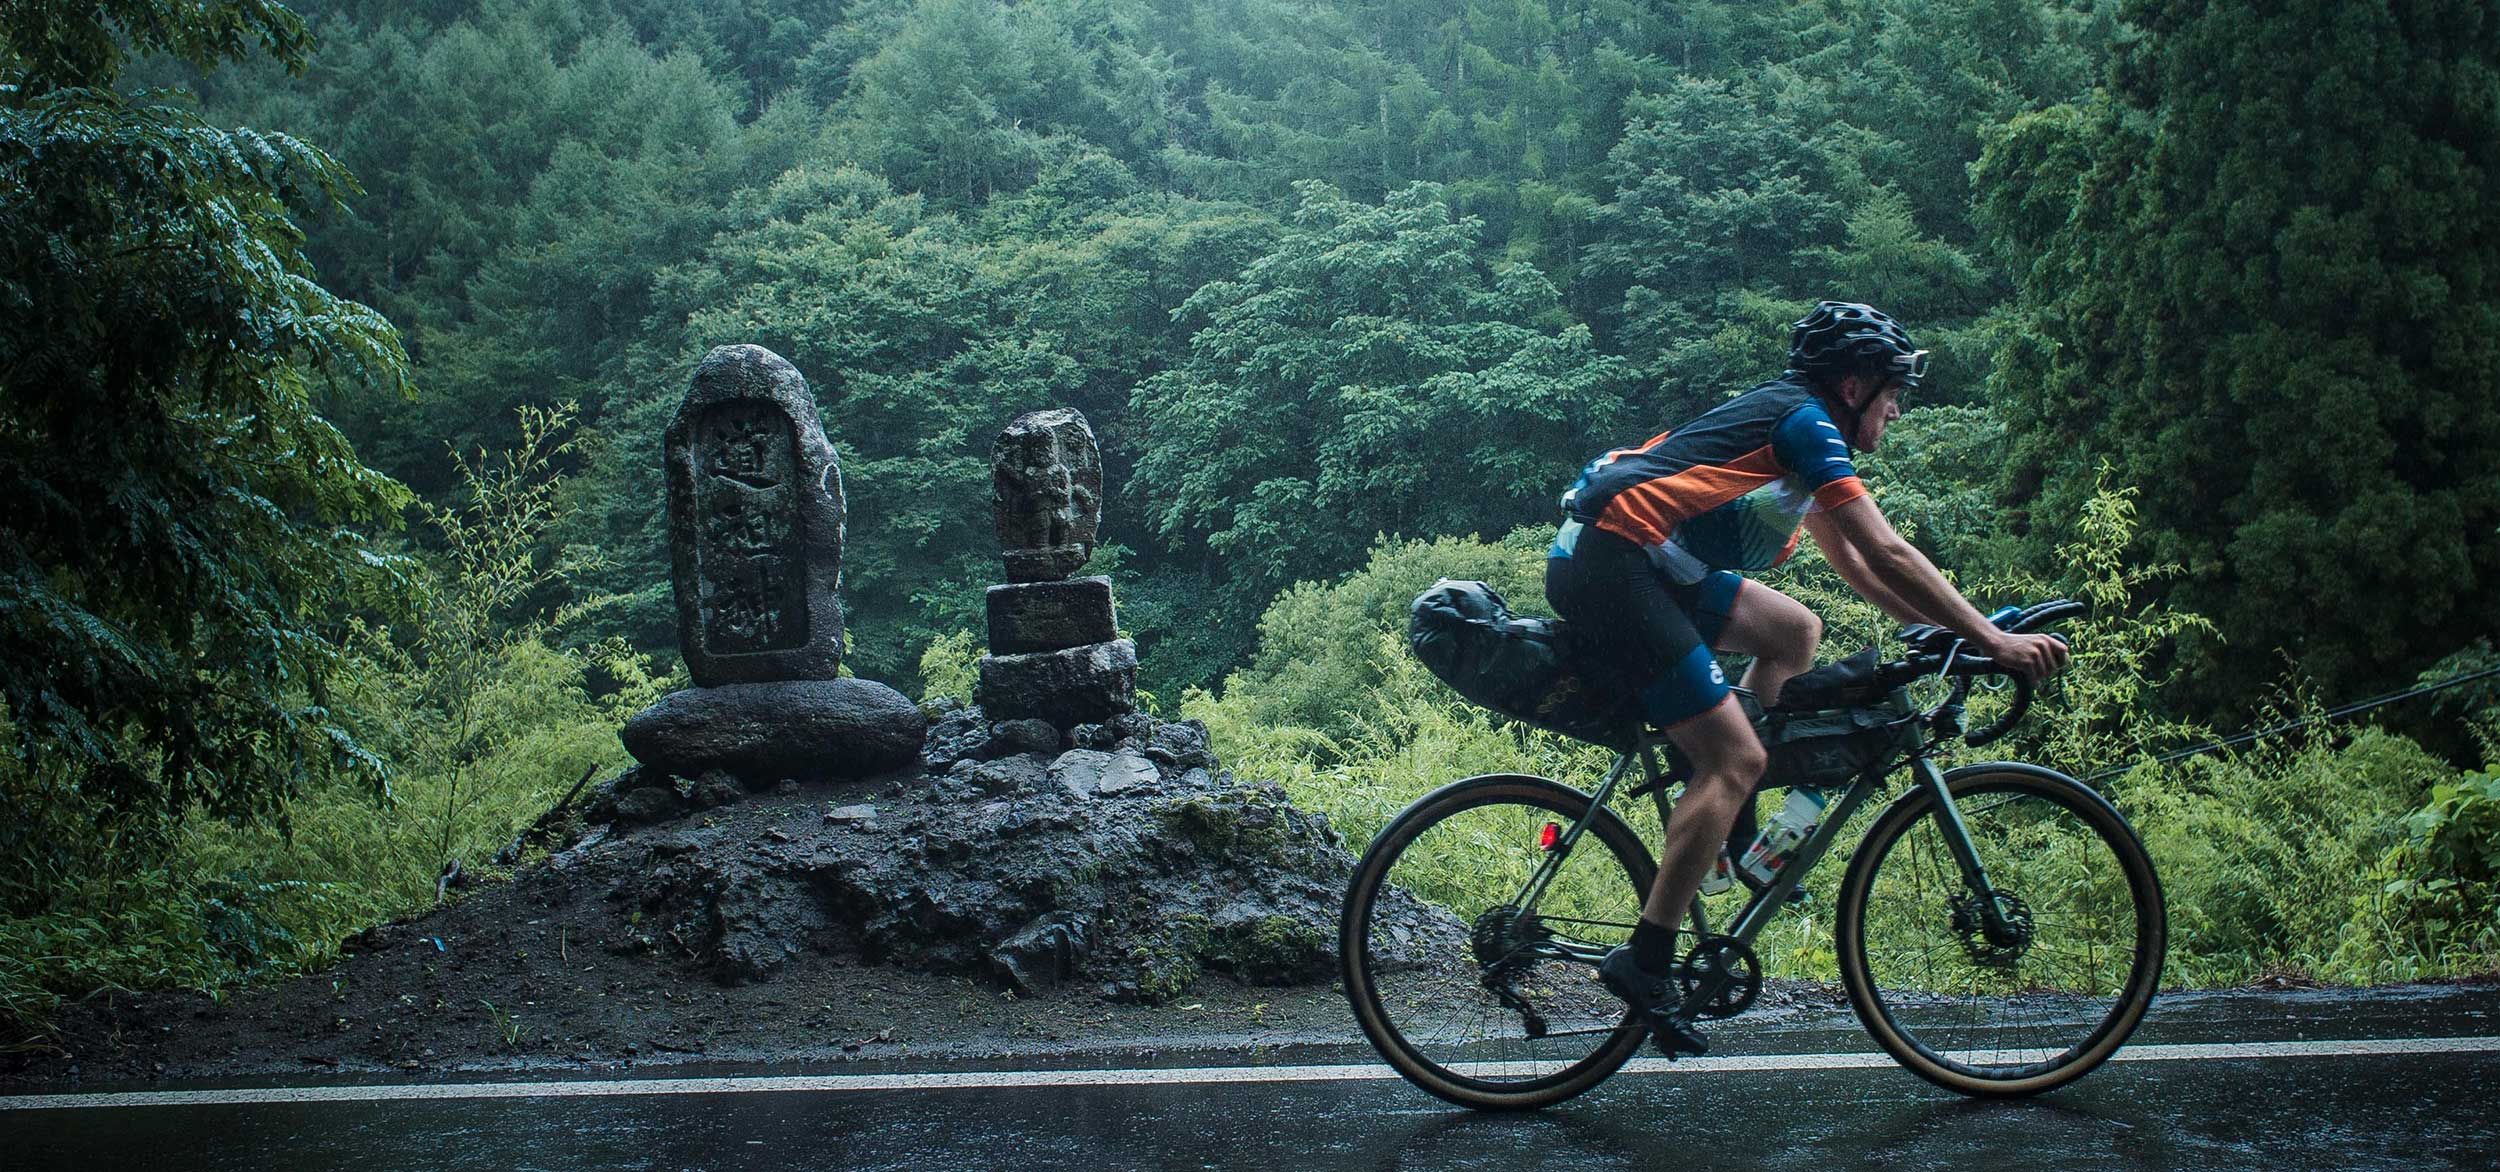 japanese odyssey wilderness spirit cycling across japan